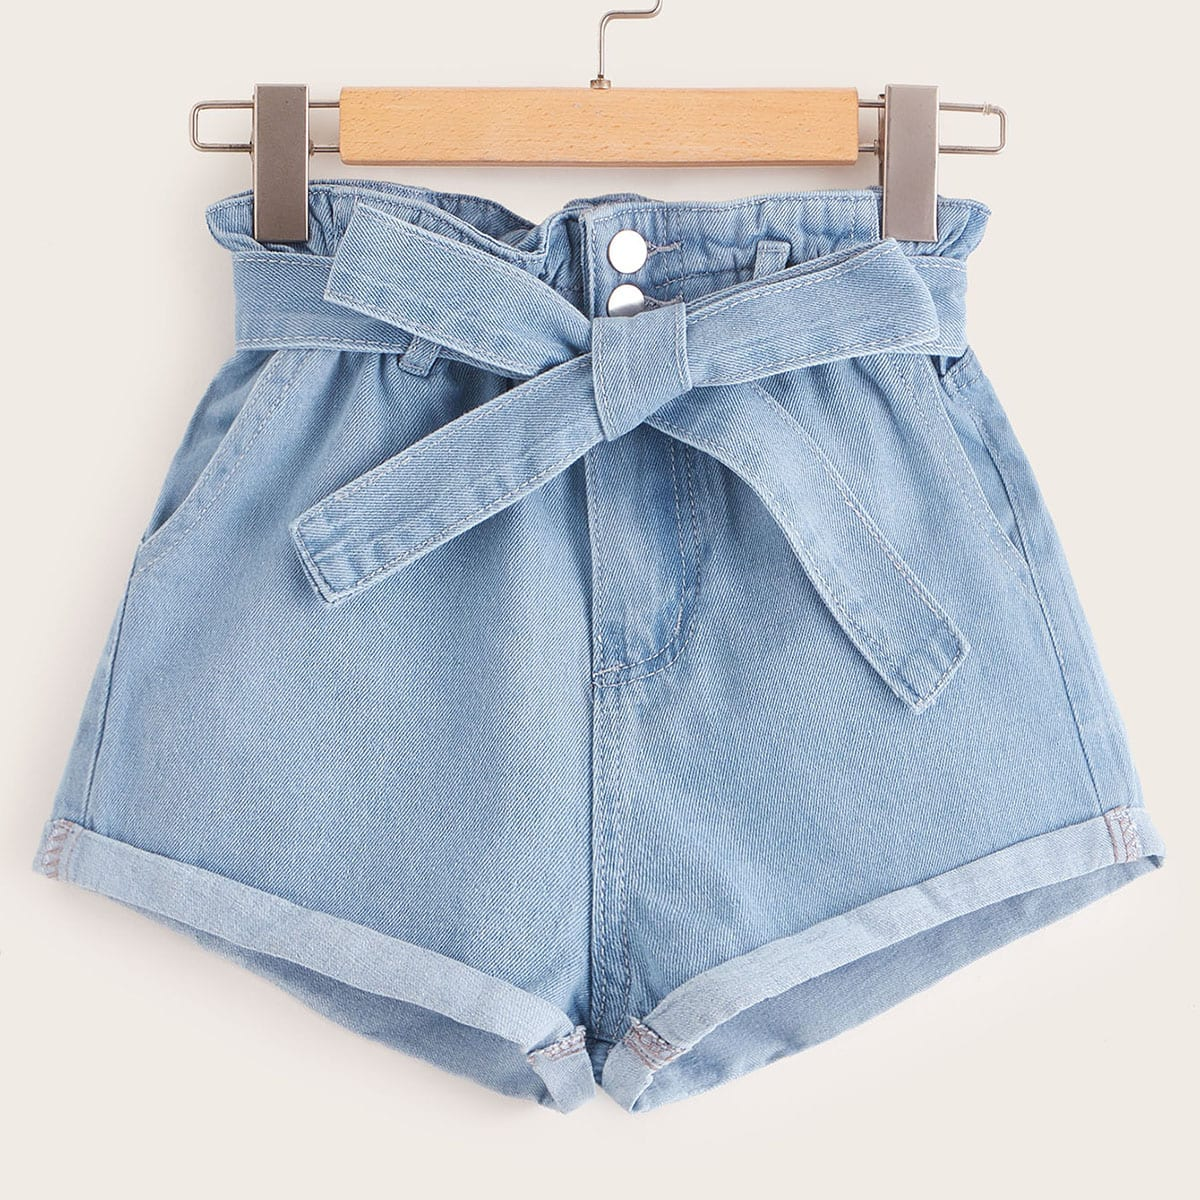 Paperbag Waist Belted Cuffed Denim Shorts in Blue Pastel by ROMWE on GOOFASH